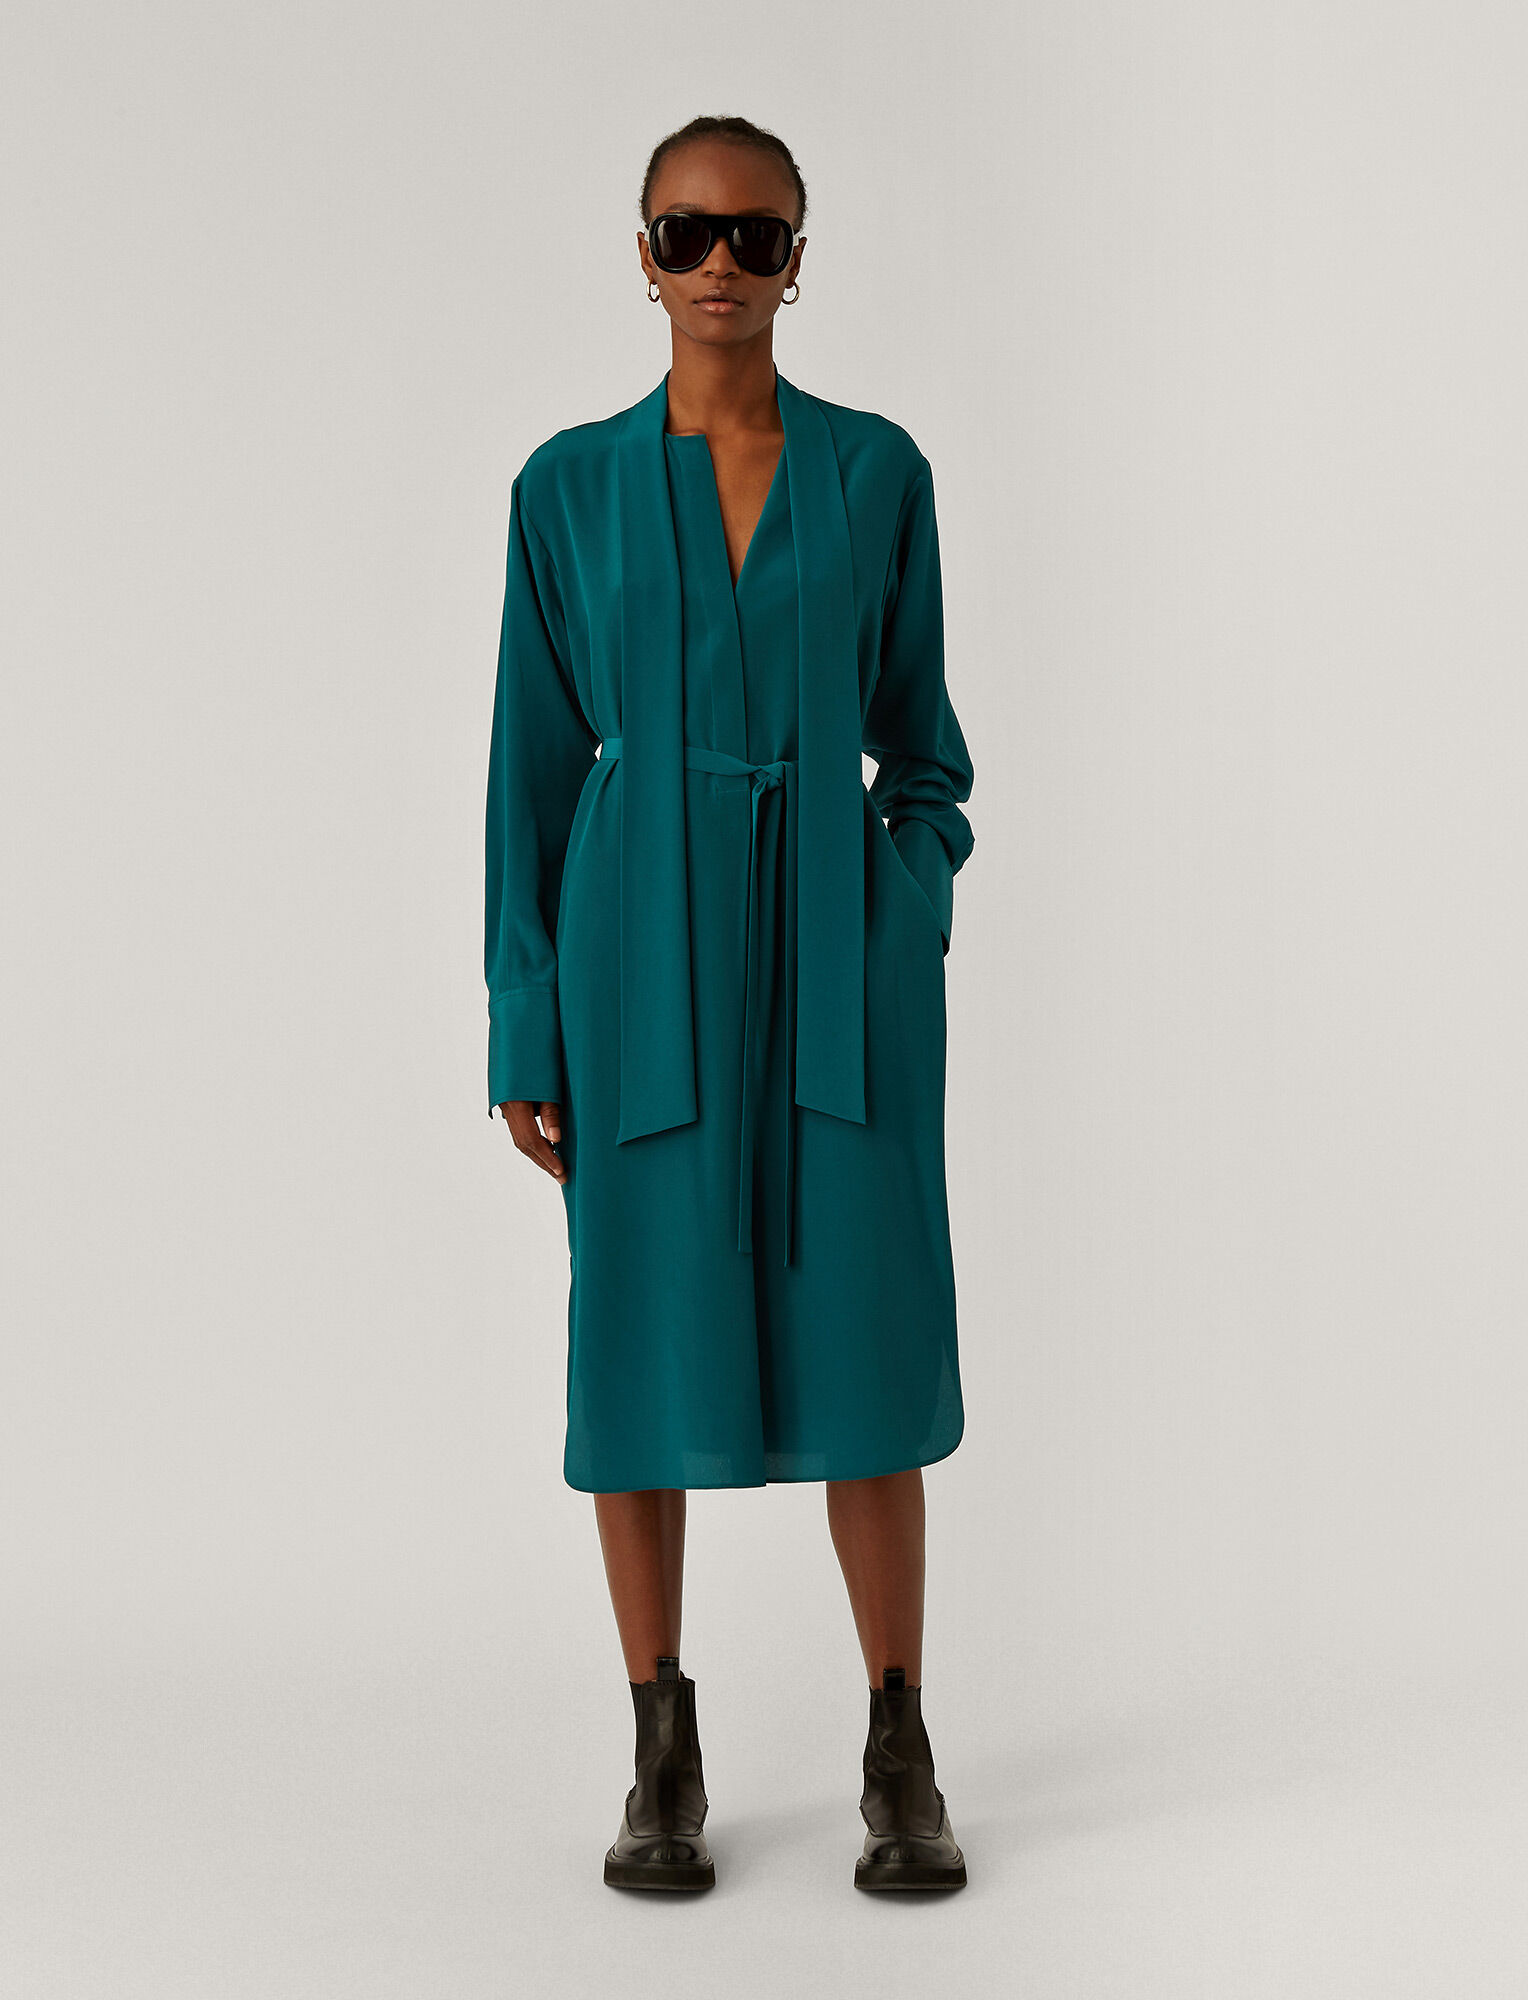 Joseph, Dorianne Crepe De Chine Dress, in Teal